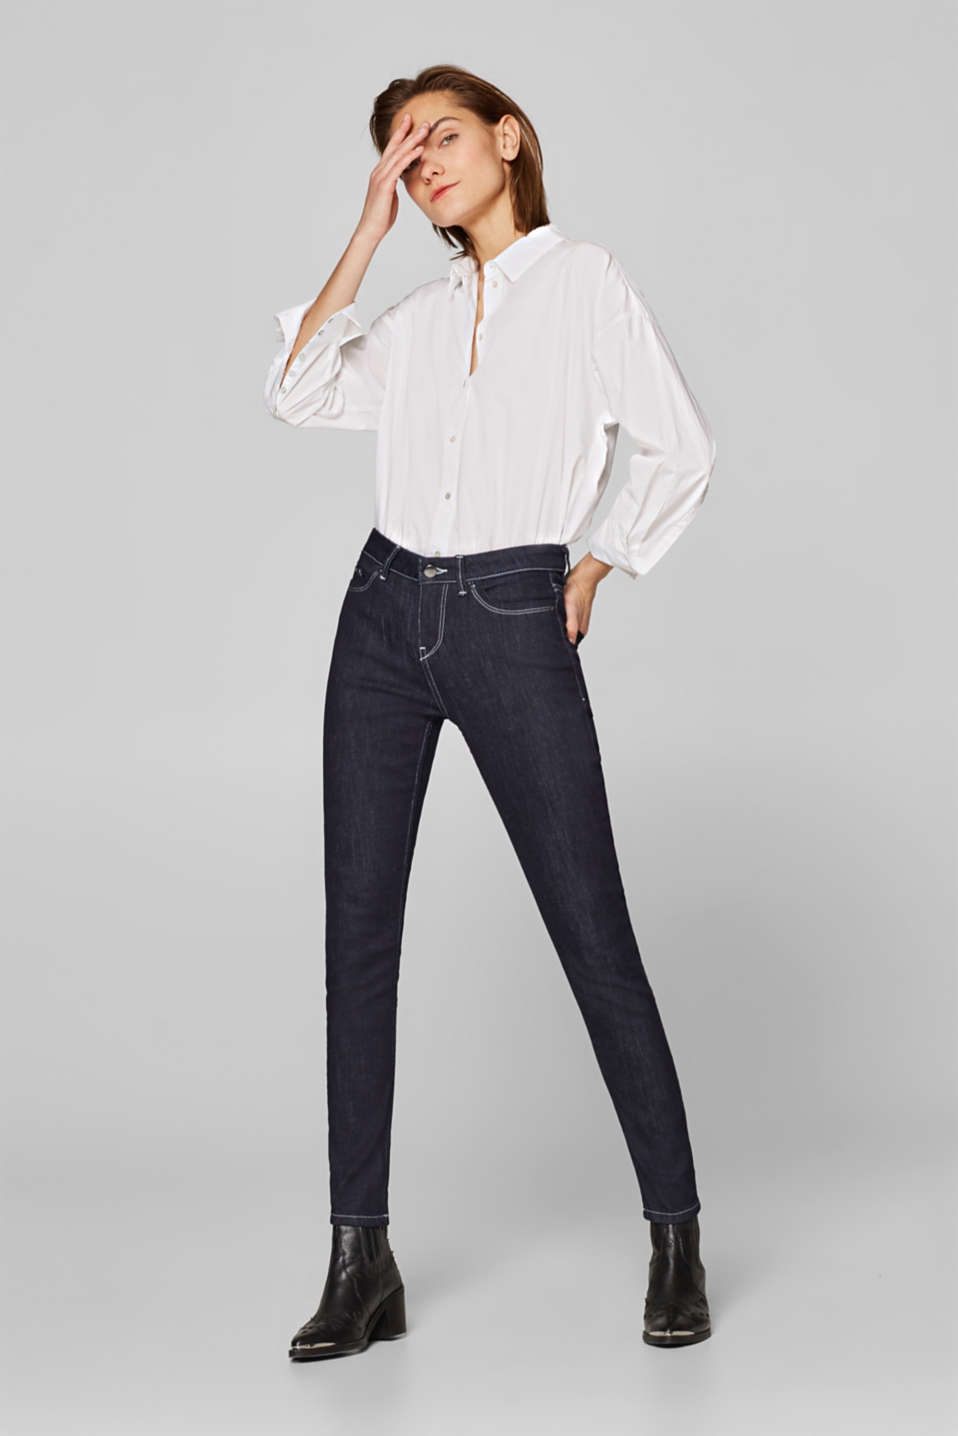 Esprit - Stretch jeans with contrasting stitching